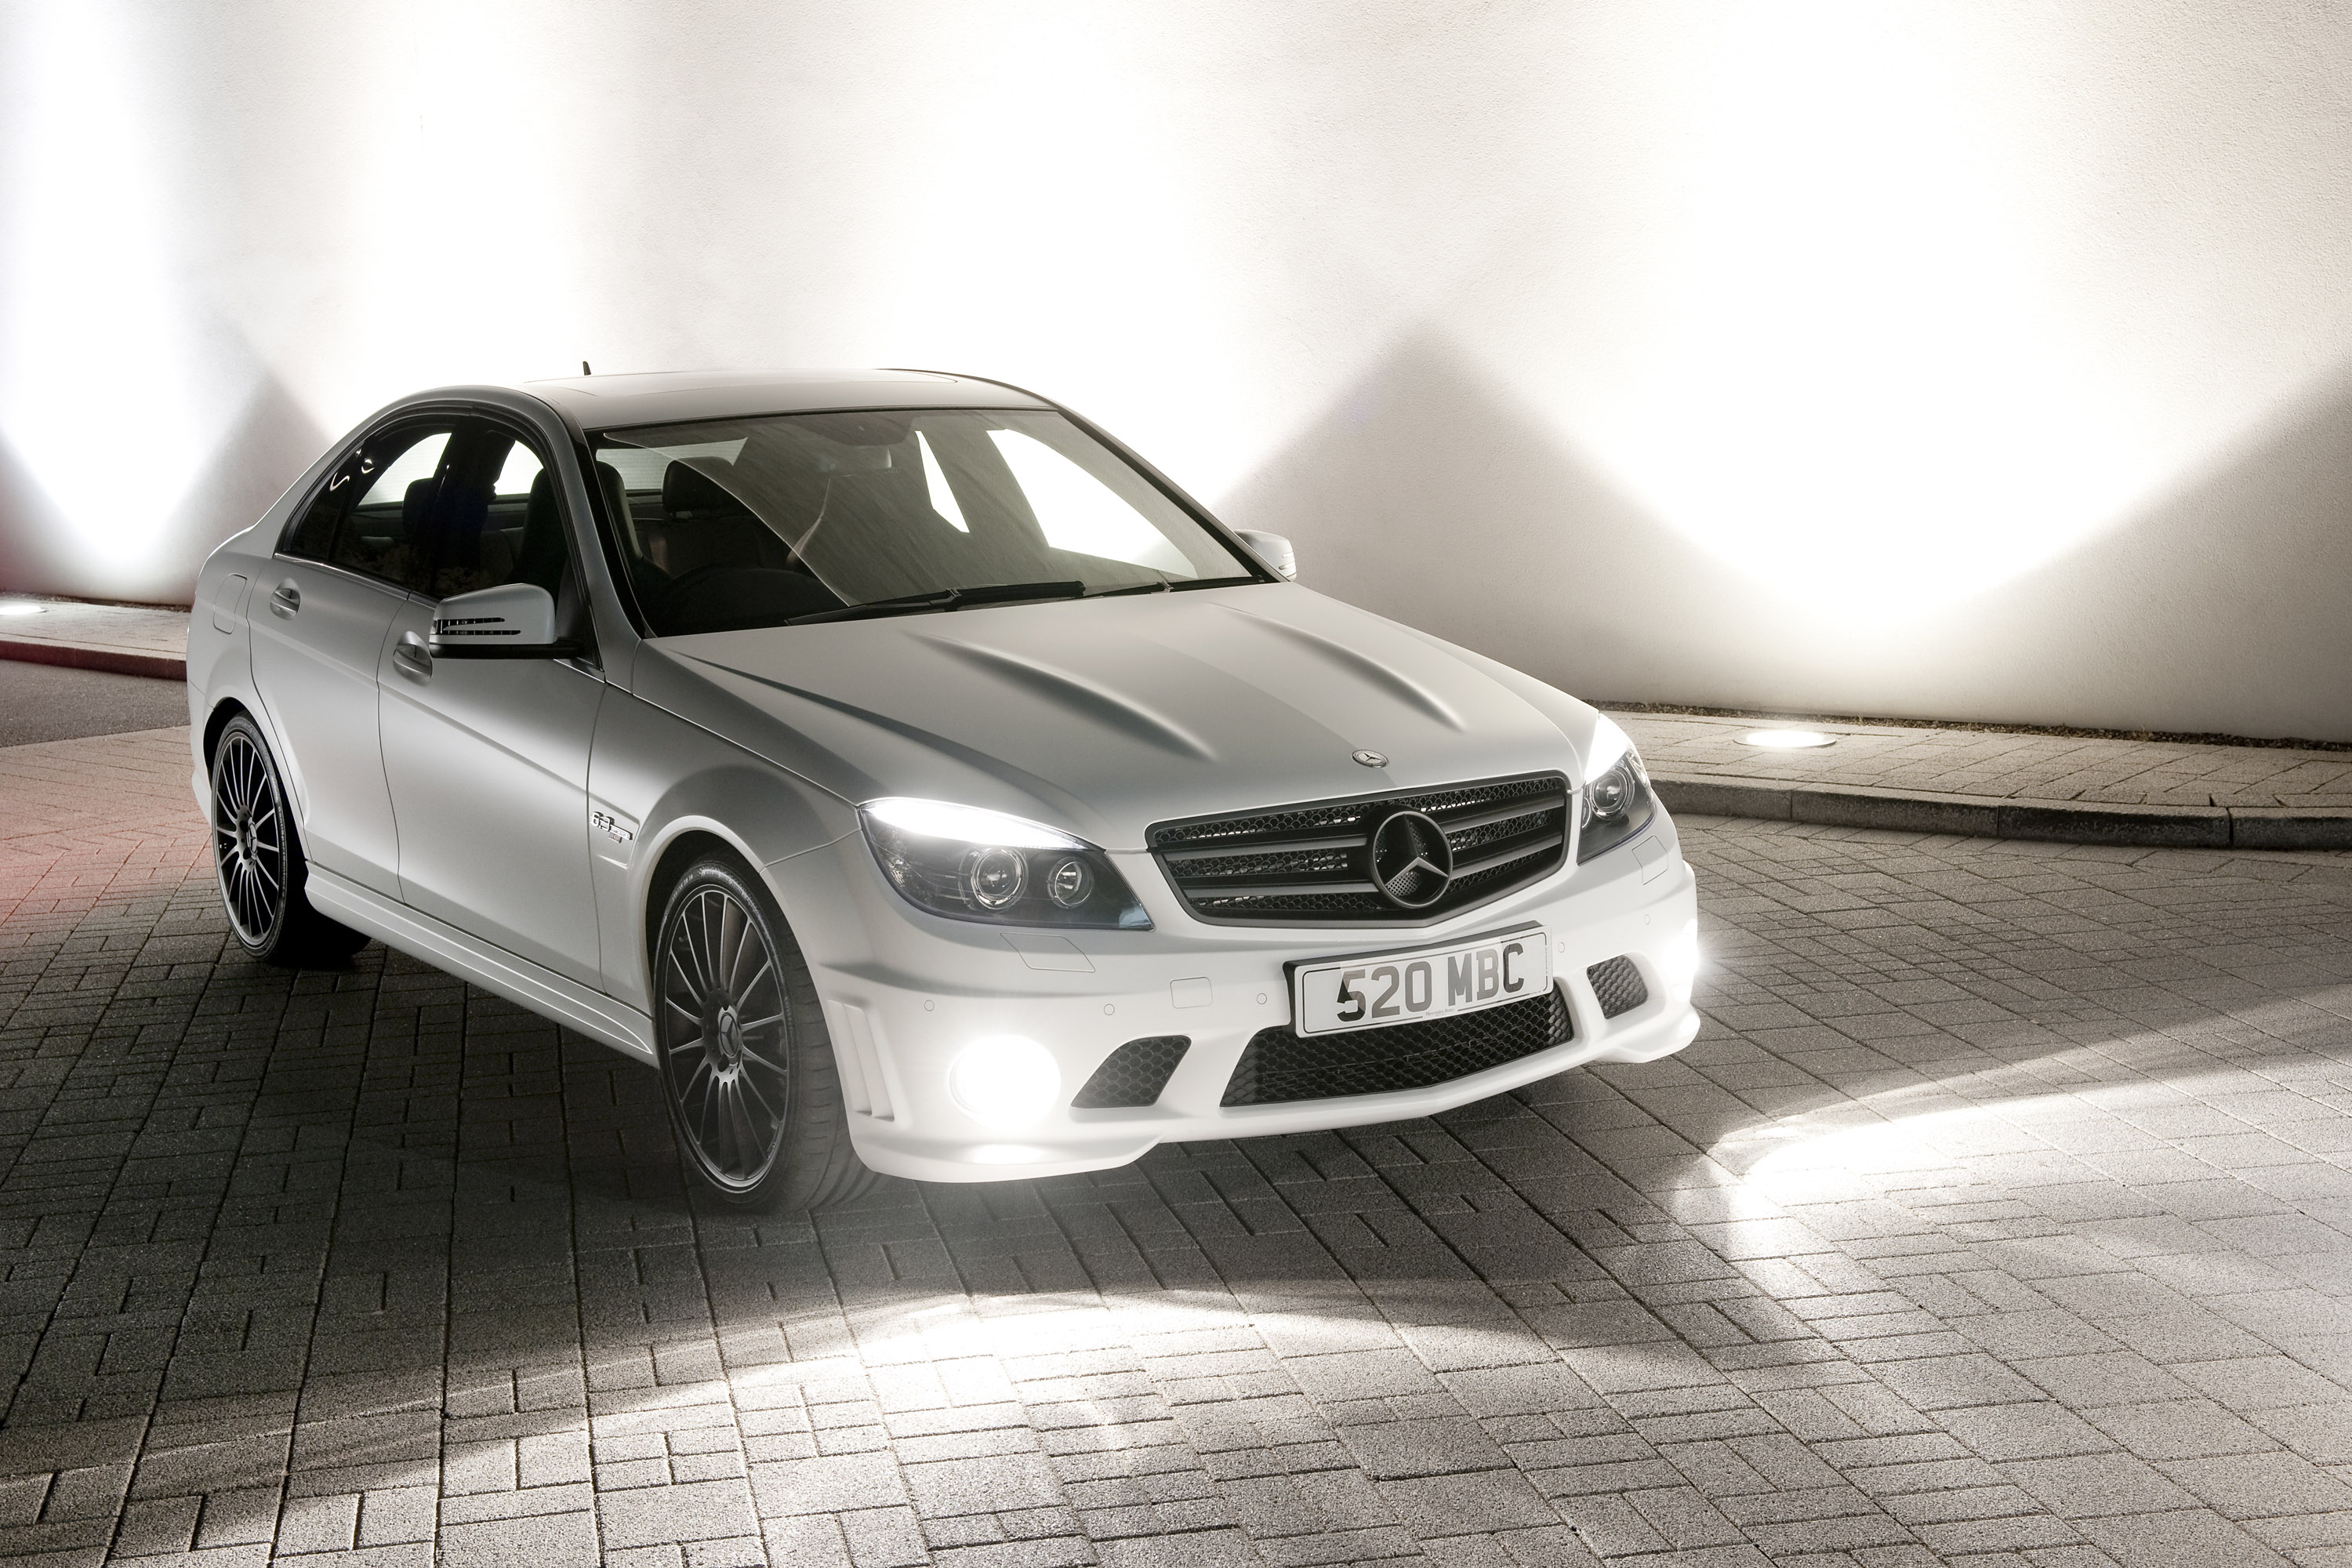 Jenson button has new toy mercedes benz c class dr520 estate for Mercedes benz of minneapolis